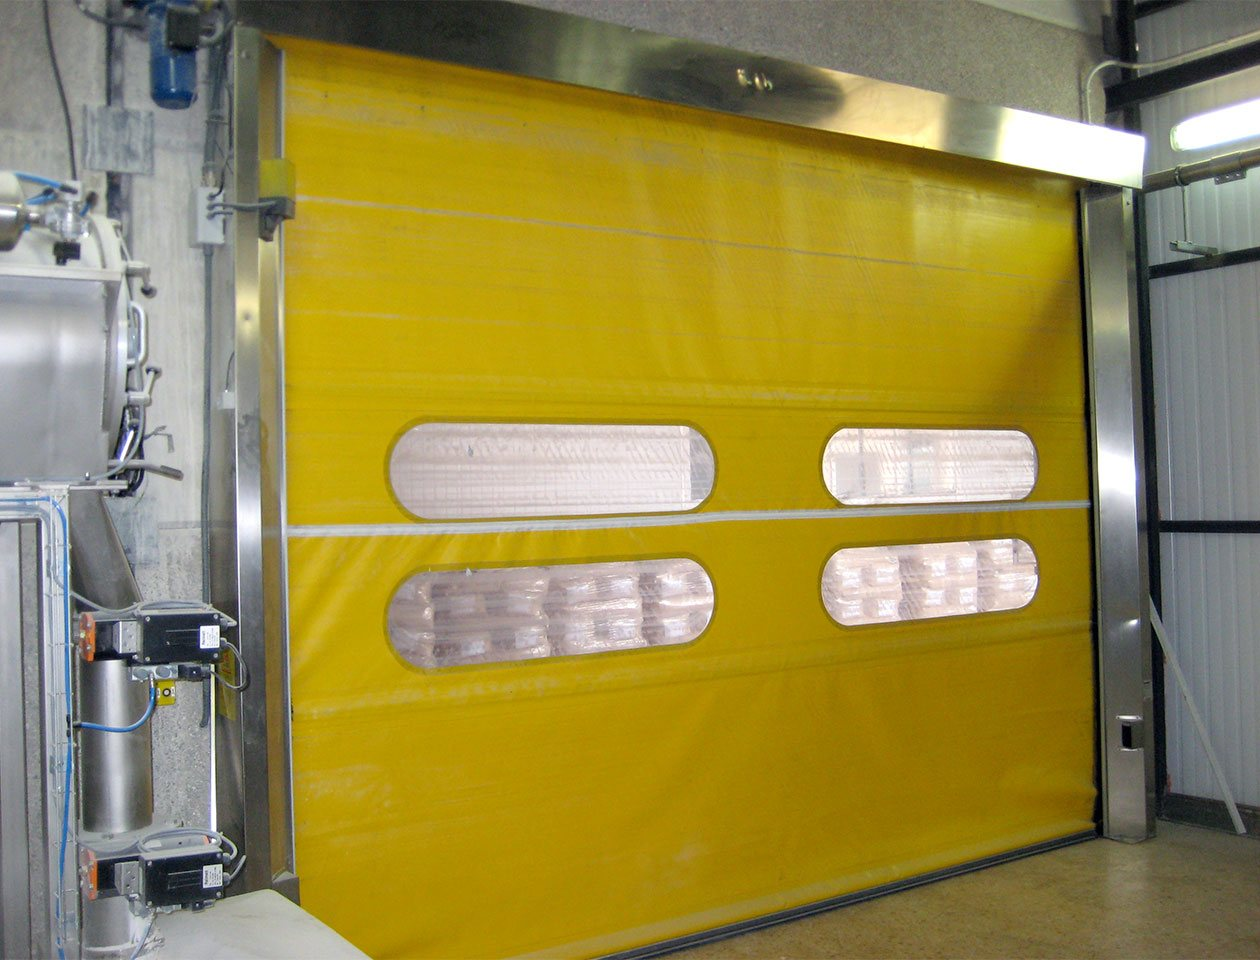 vr thermal break door in yellow